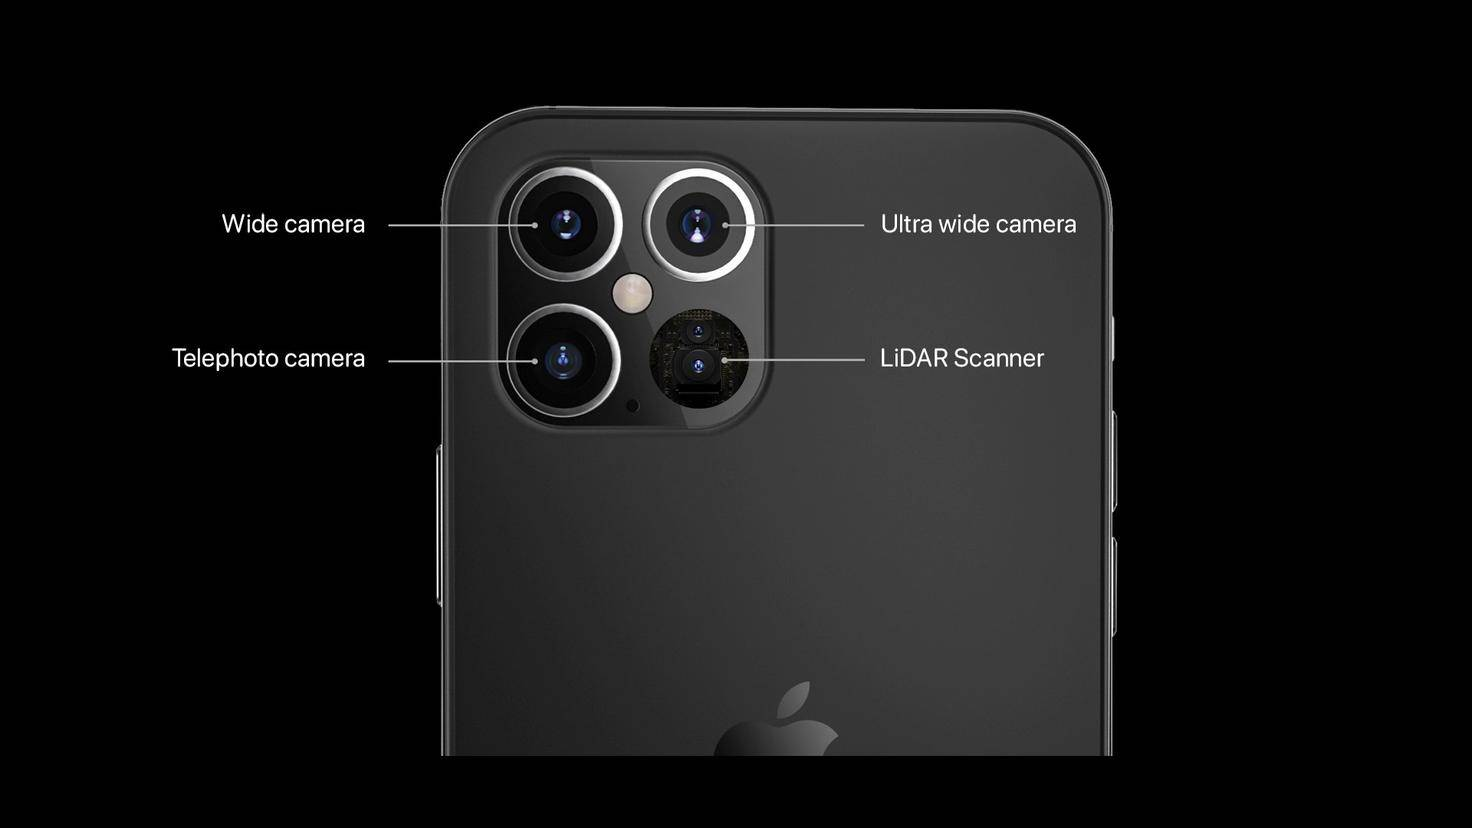 iPhone-12-LiDAR-scanner-explained